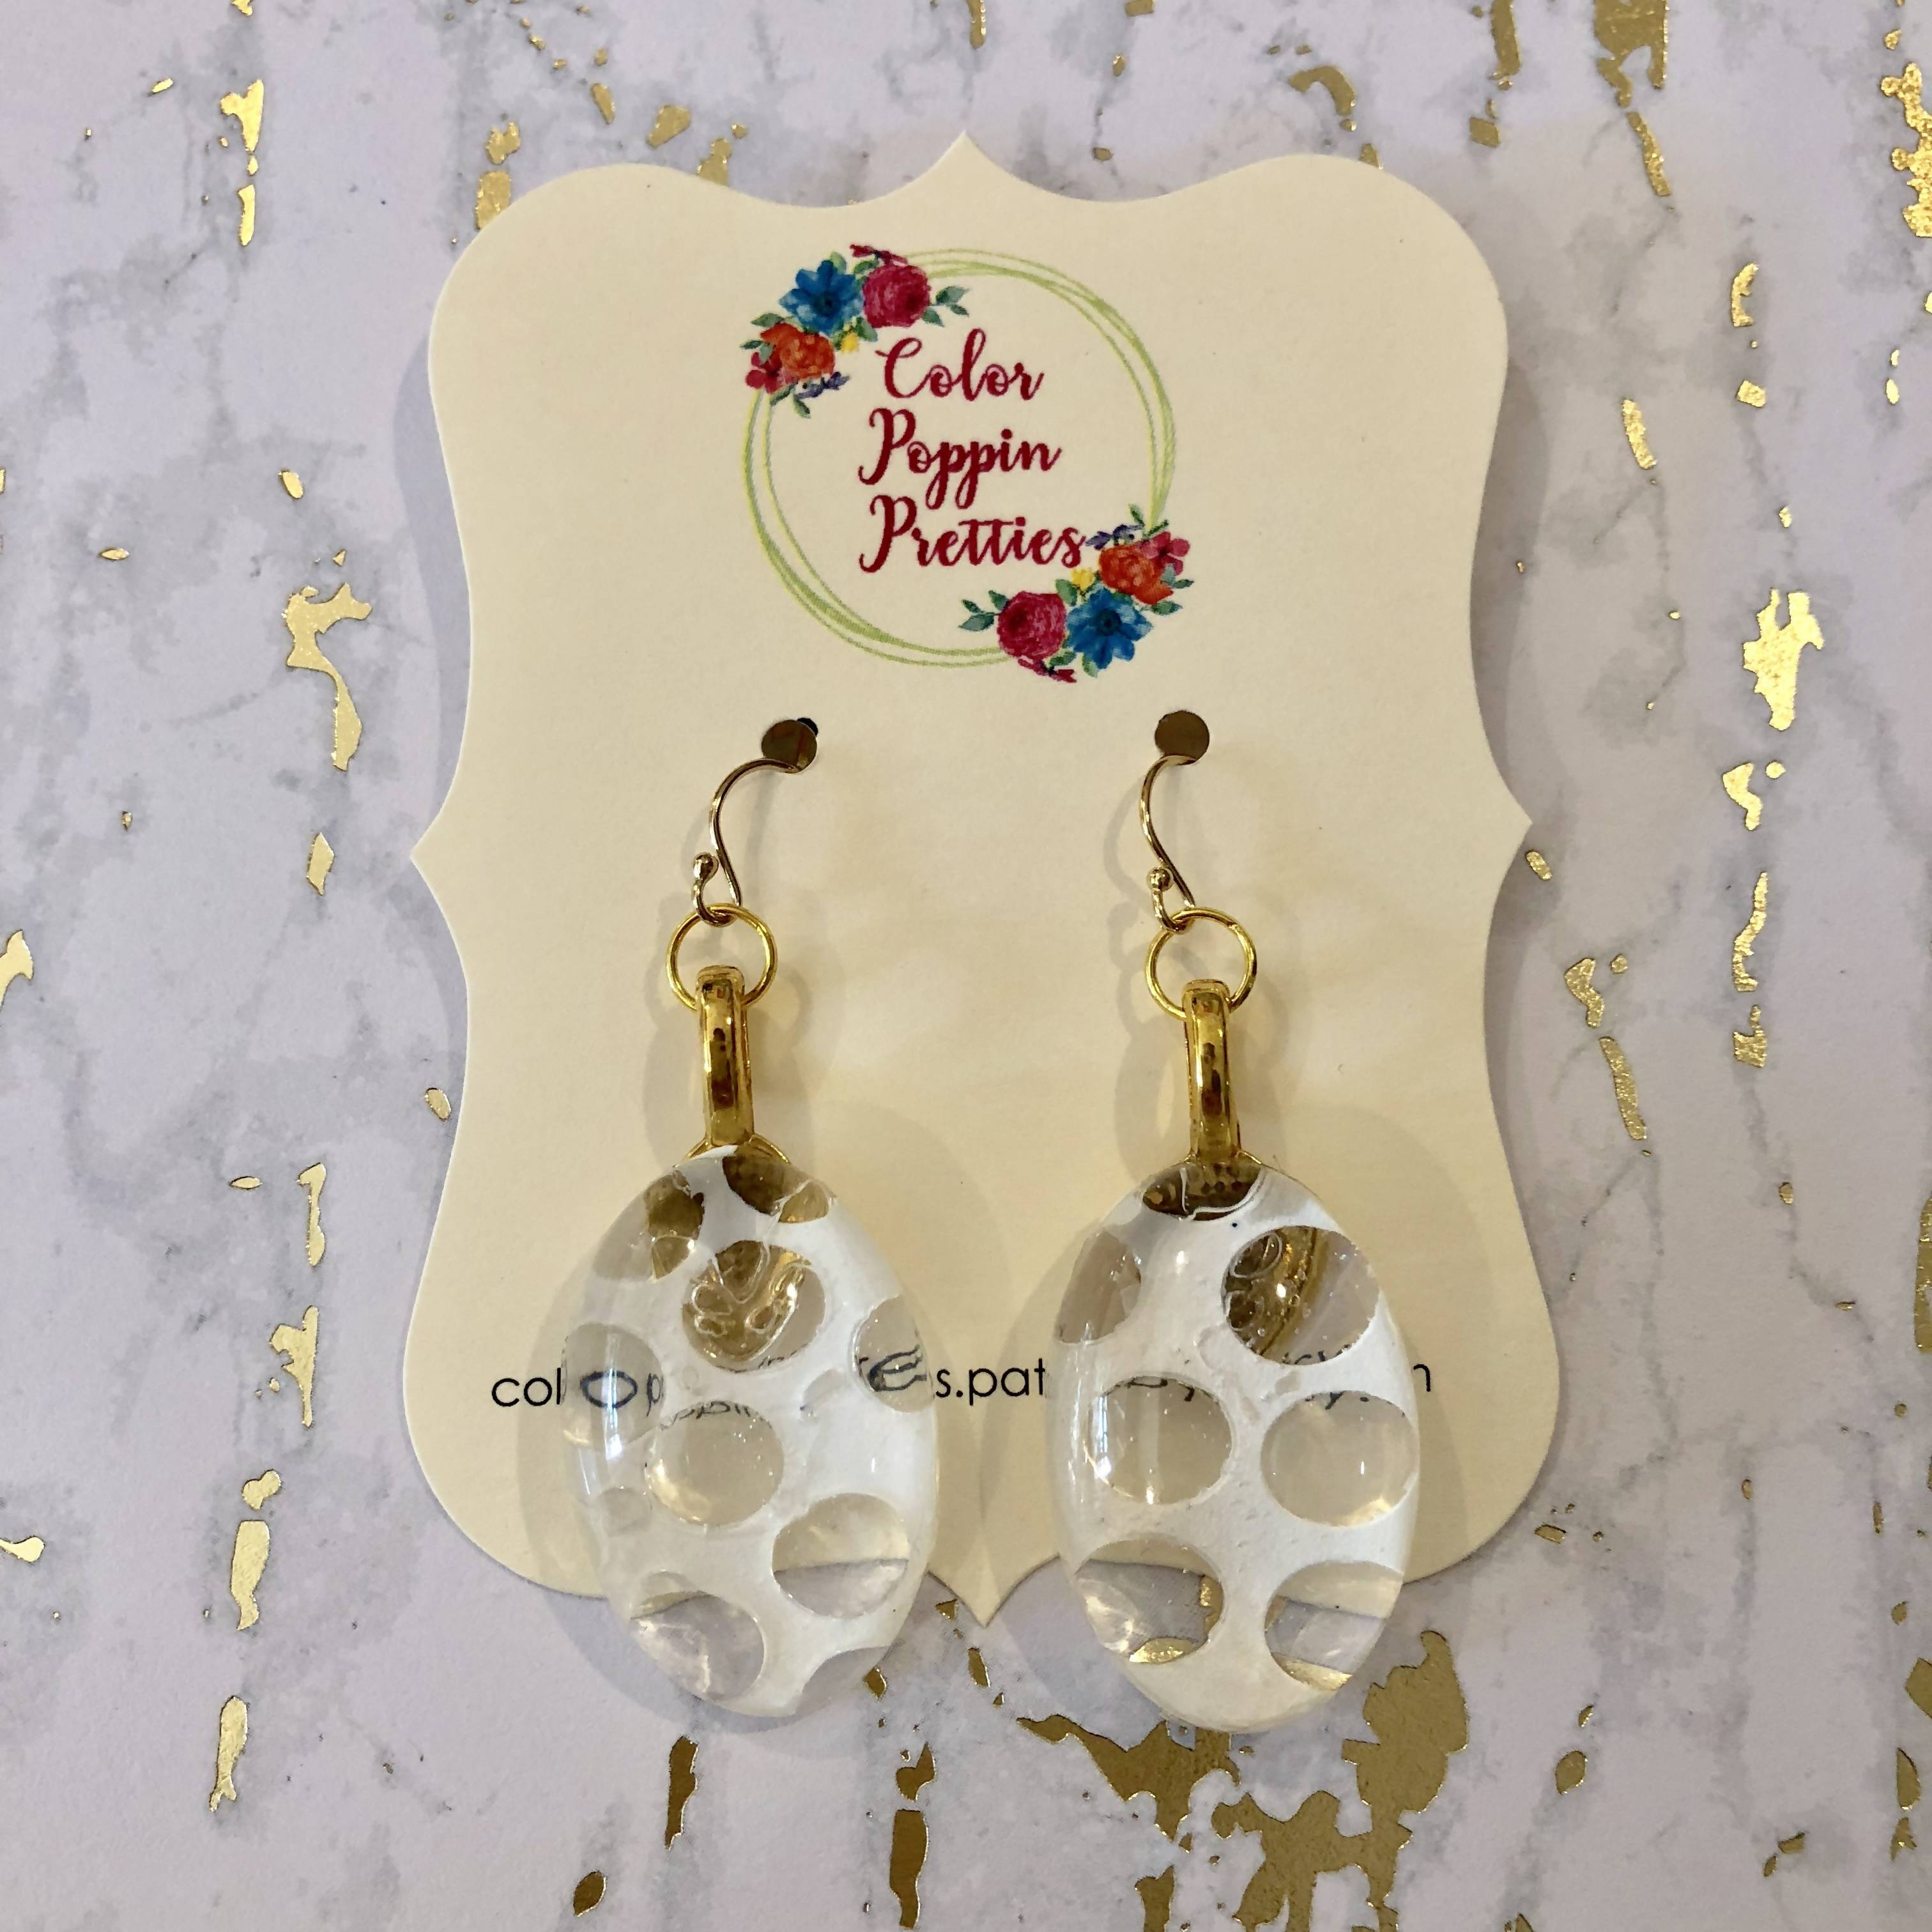 Oval earrings - resin and white polka dots with 14K gold filled hooks